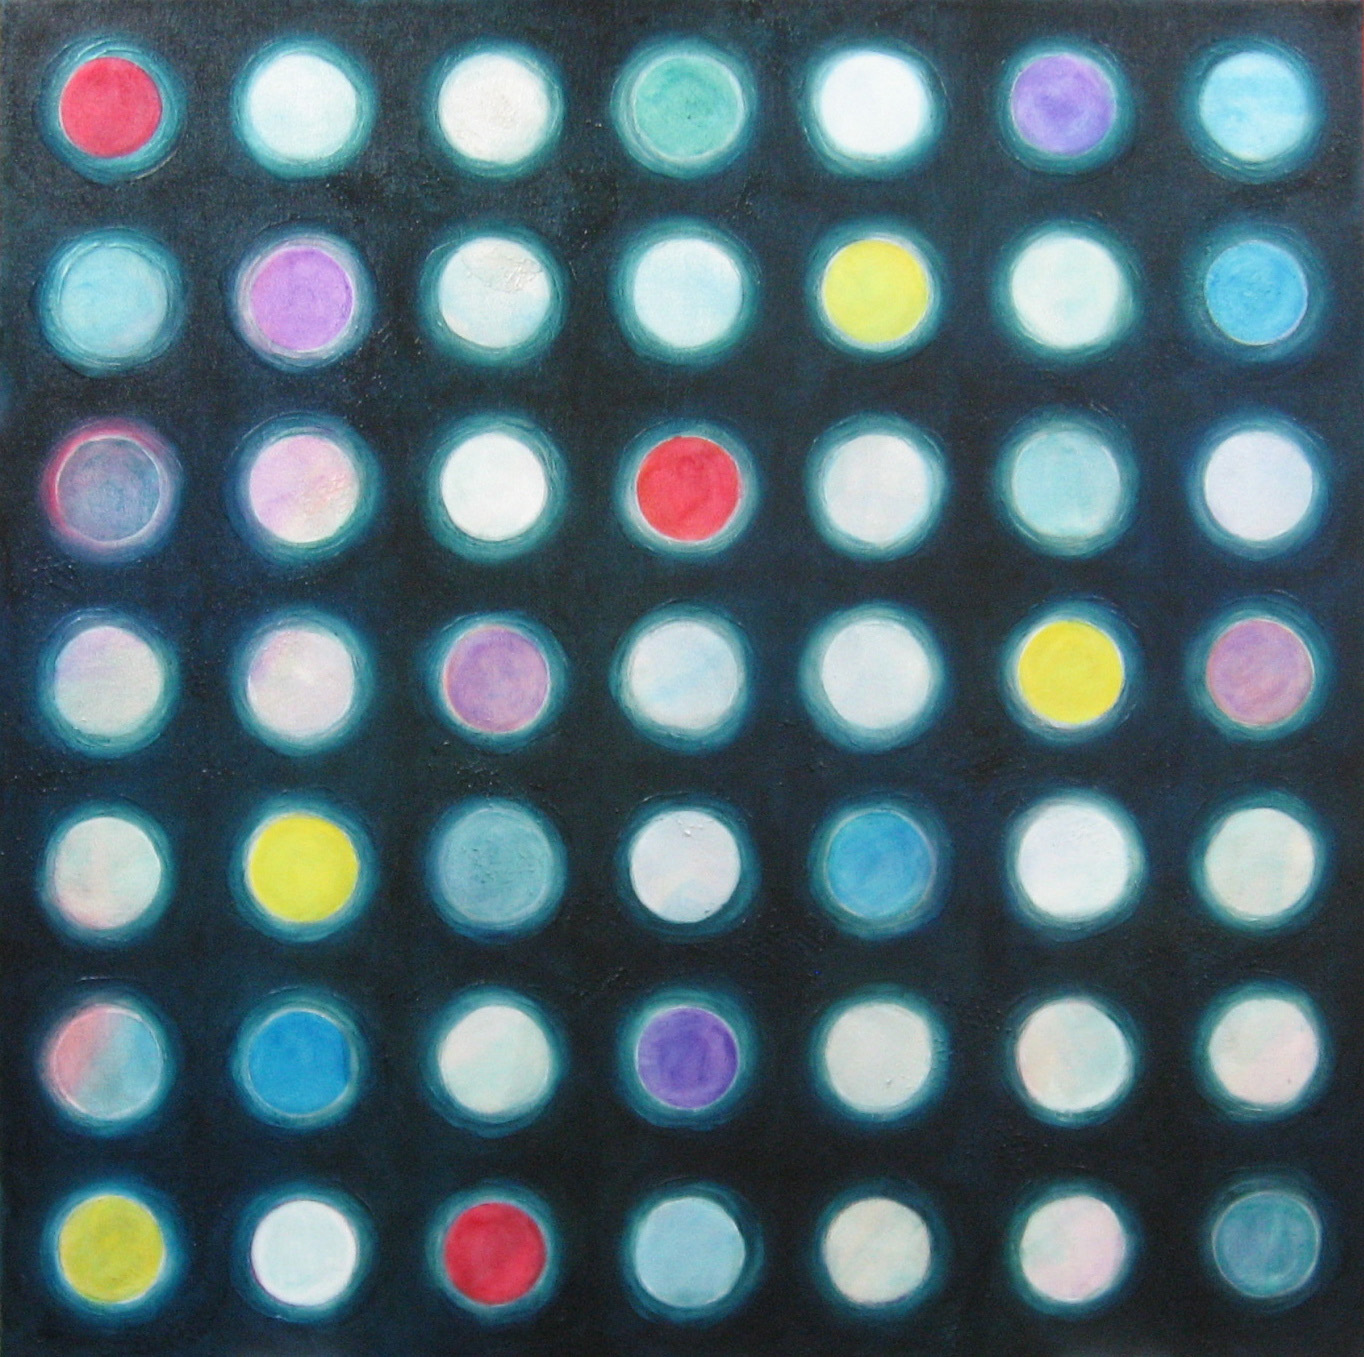 Etude circles oil painting